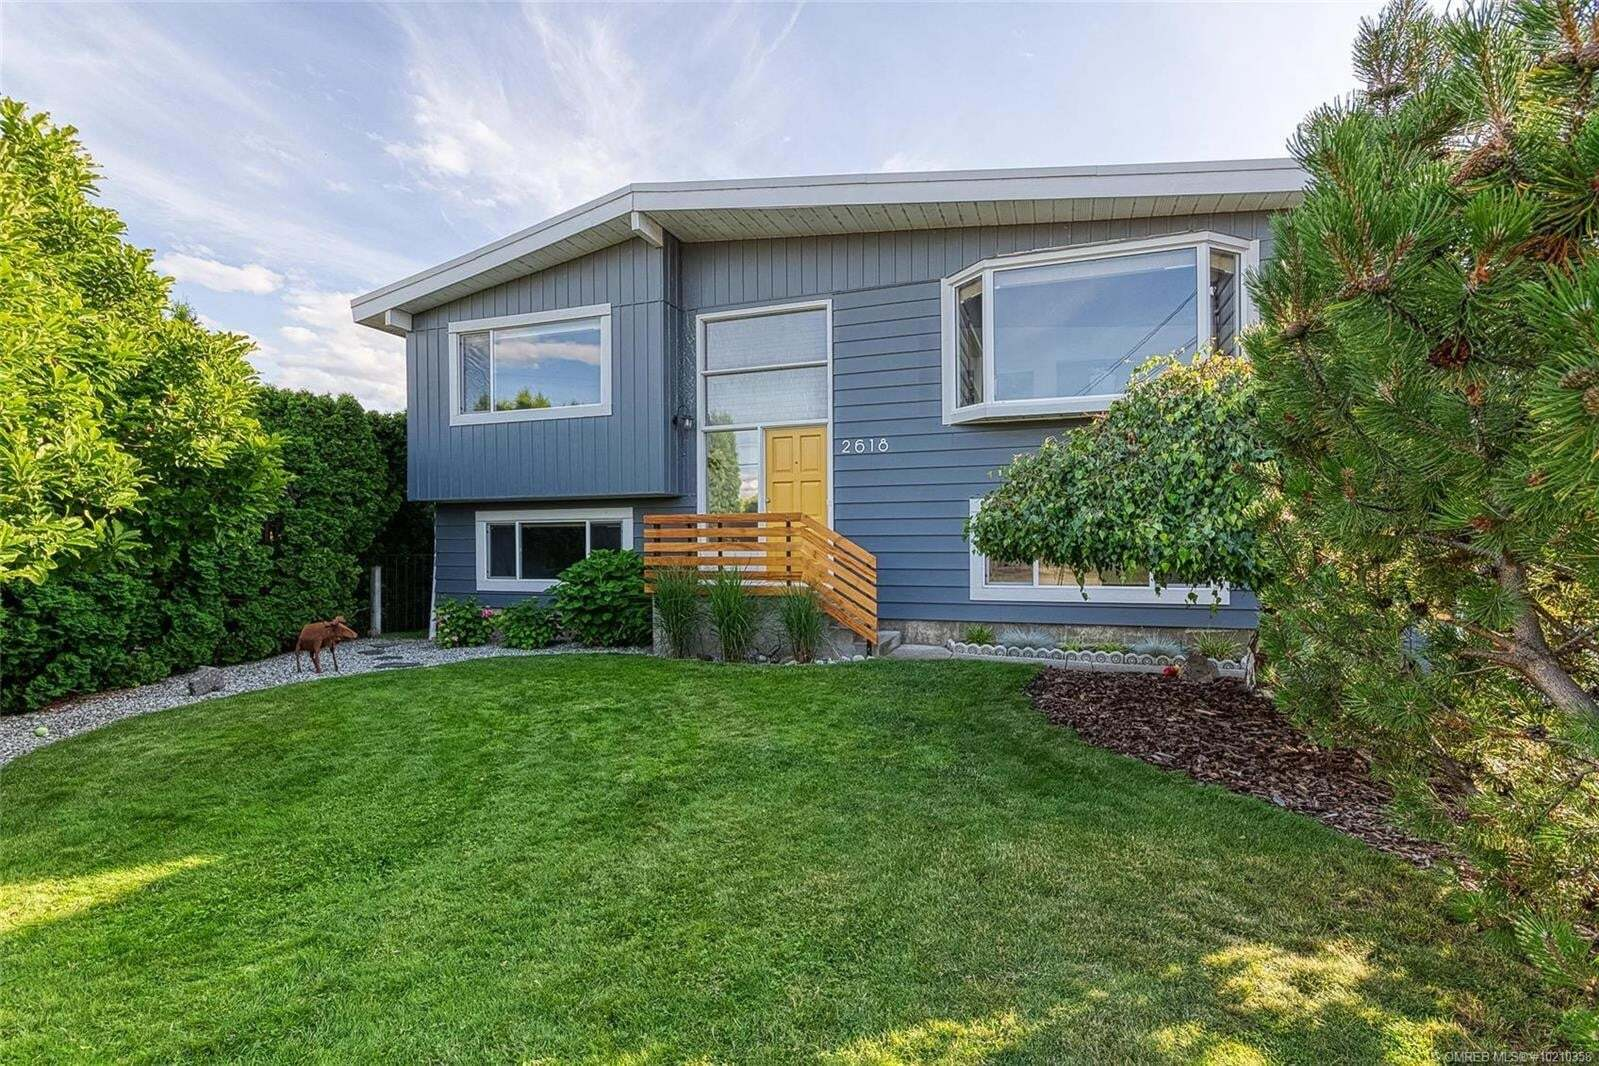 House for sale at 2618 Casa Loma Rd West Kelowna British Columbia - MLS: 10210358